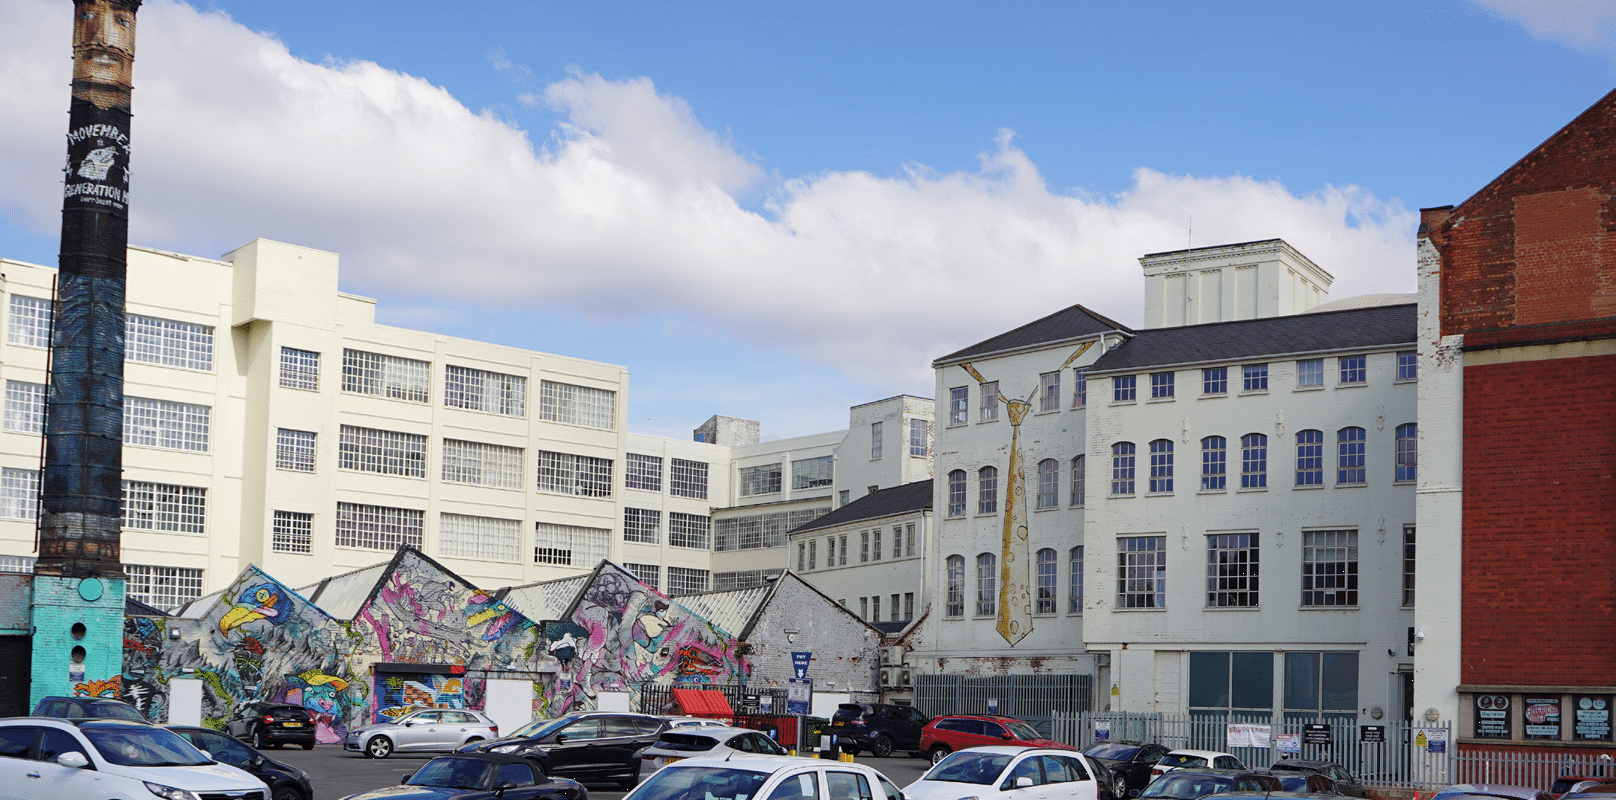 custard-factory-graffiti